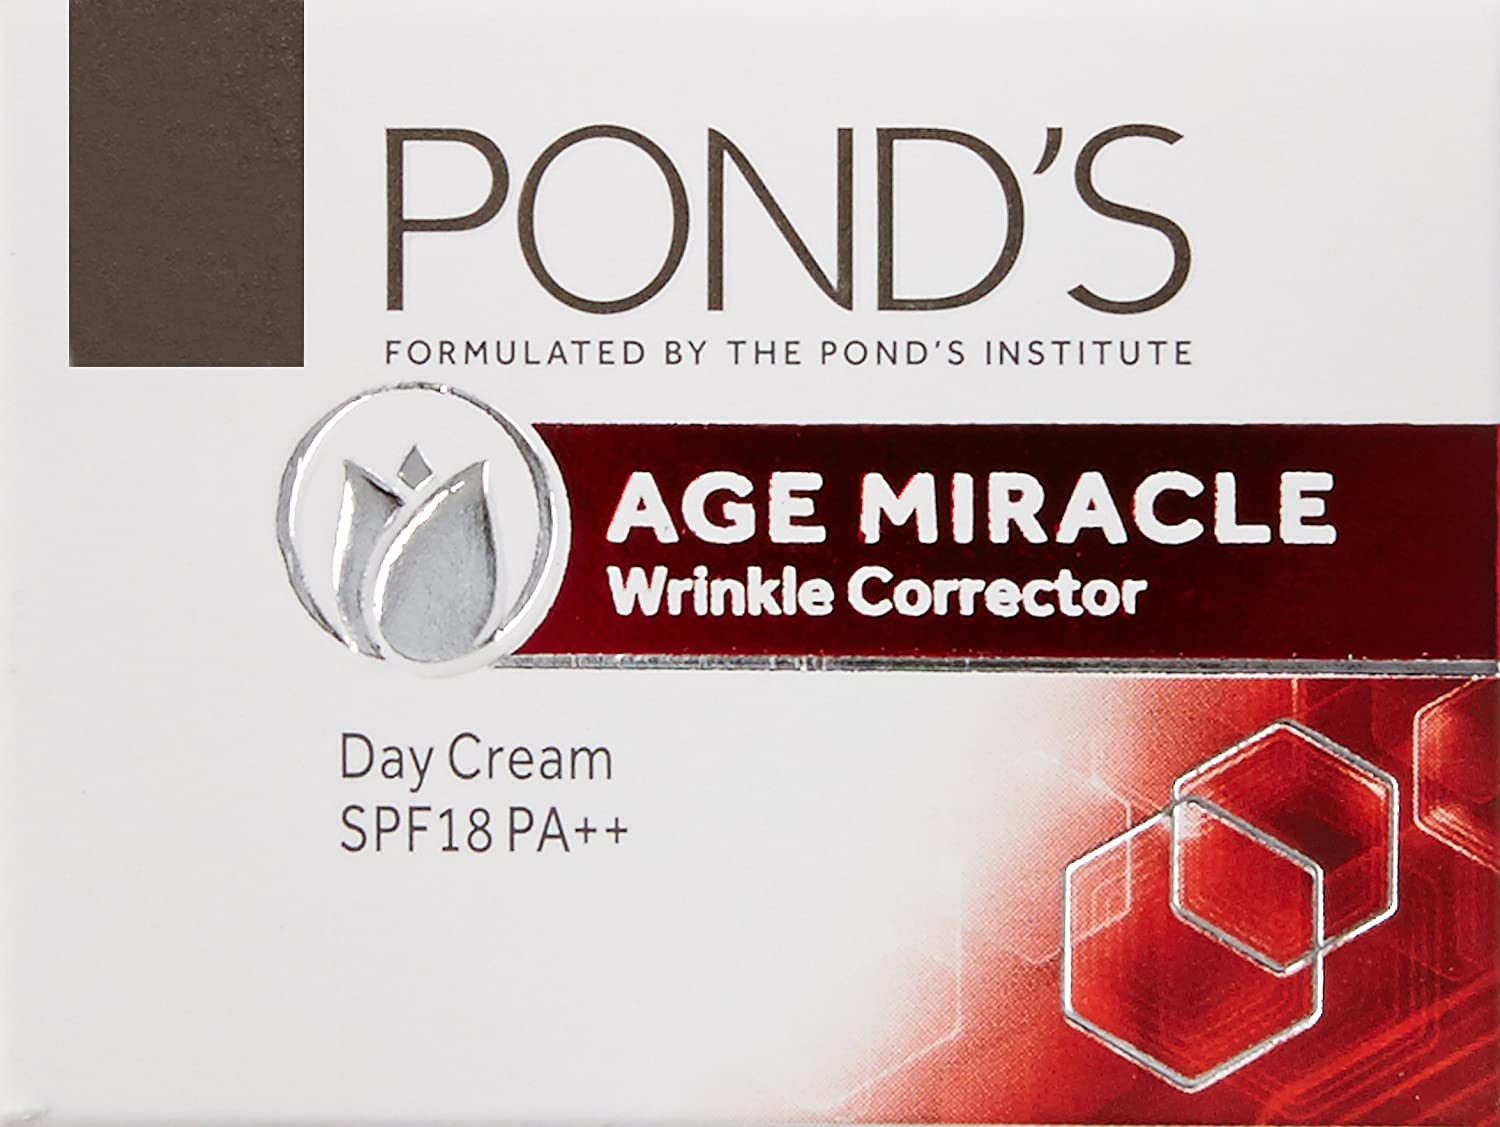 Ponds Age Miracle Wrinkle Corrector Spf 18 Pa Day Cream 10g Jar 50 G Cloudtail India